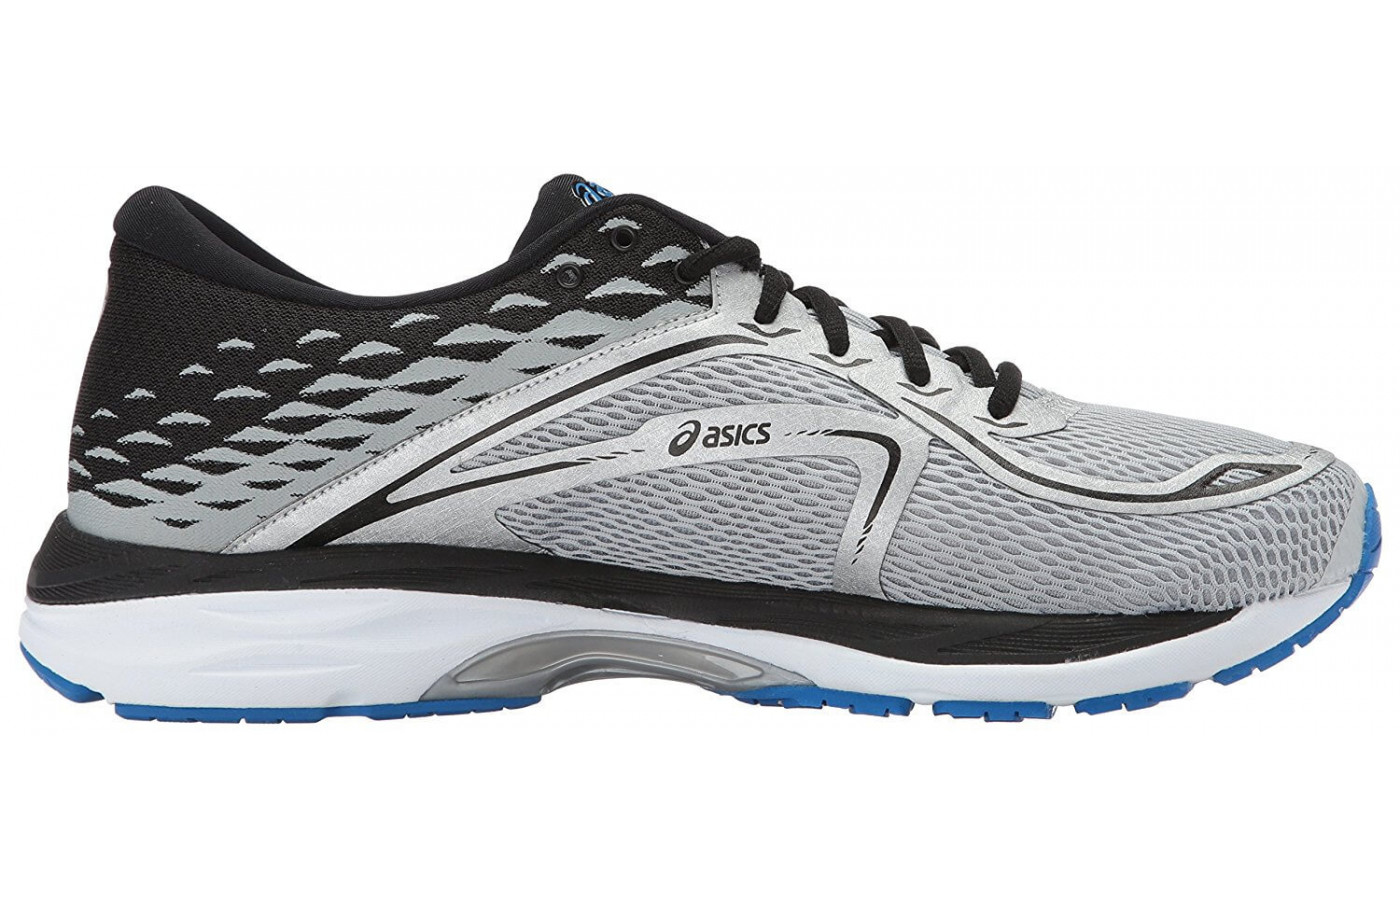 the Fluidride midsole is both lightweight and cushioned.